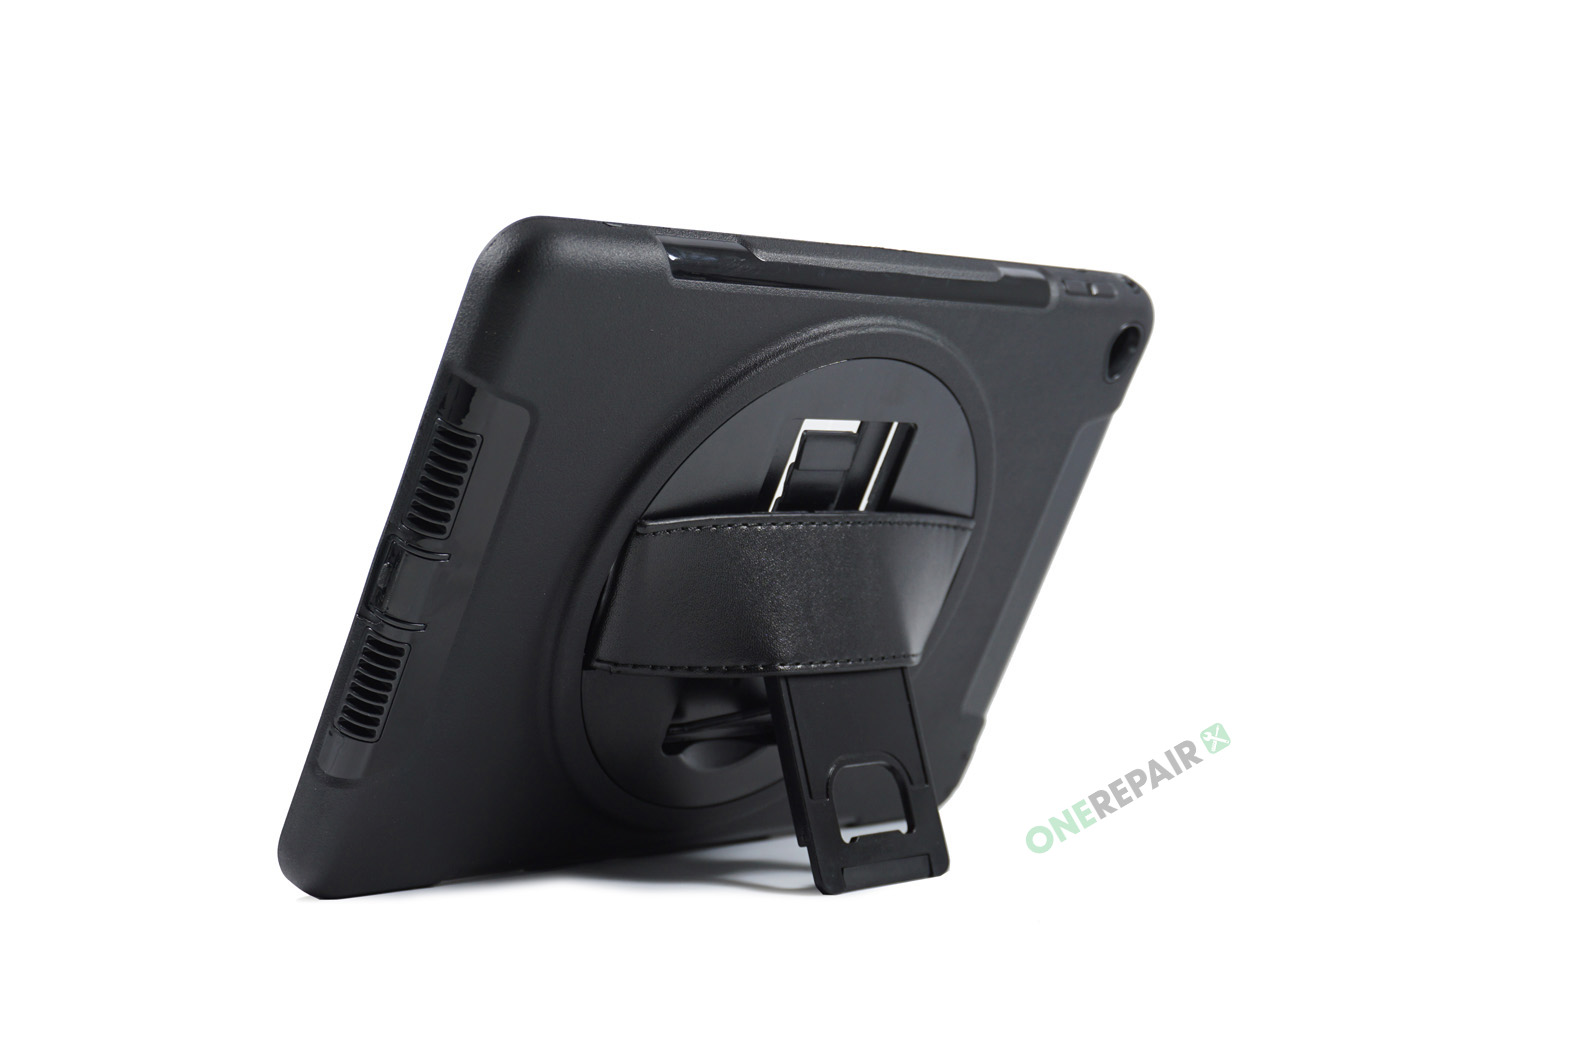 351067_351841_iPad_Air2_2_A1566_A1567_3-in-1_Thin_Boernecover_Børne_Hardcase_Cover_Sort_OneRepair_00005